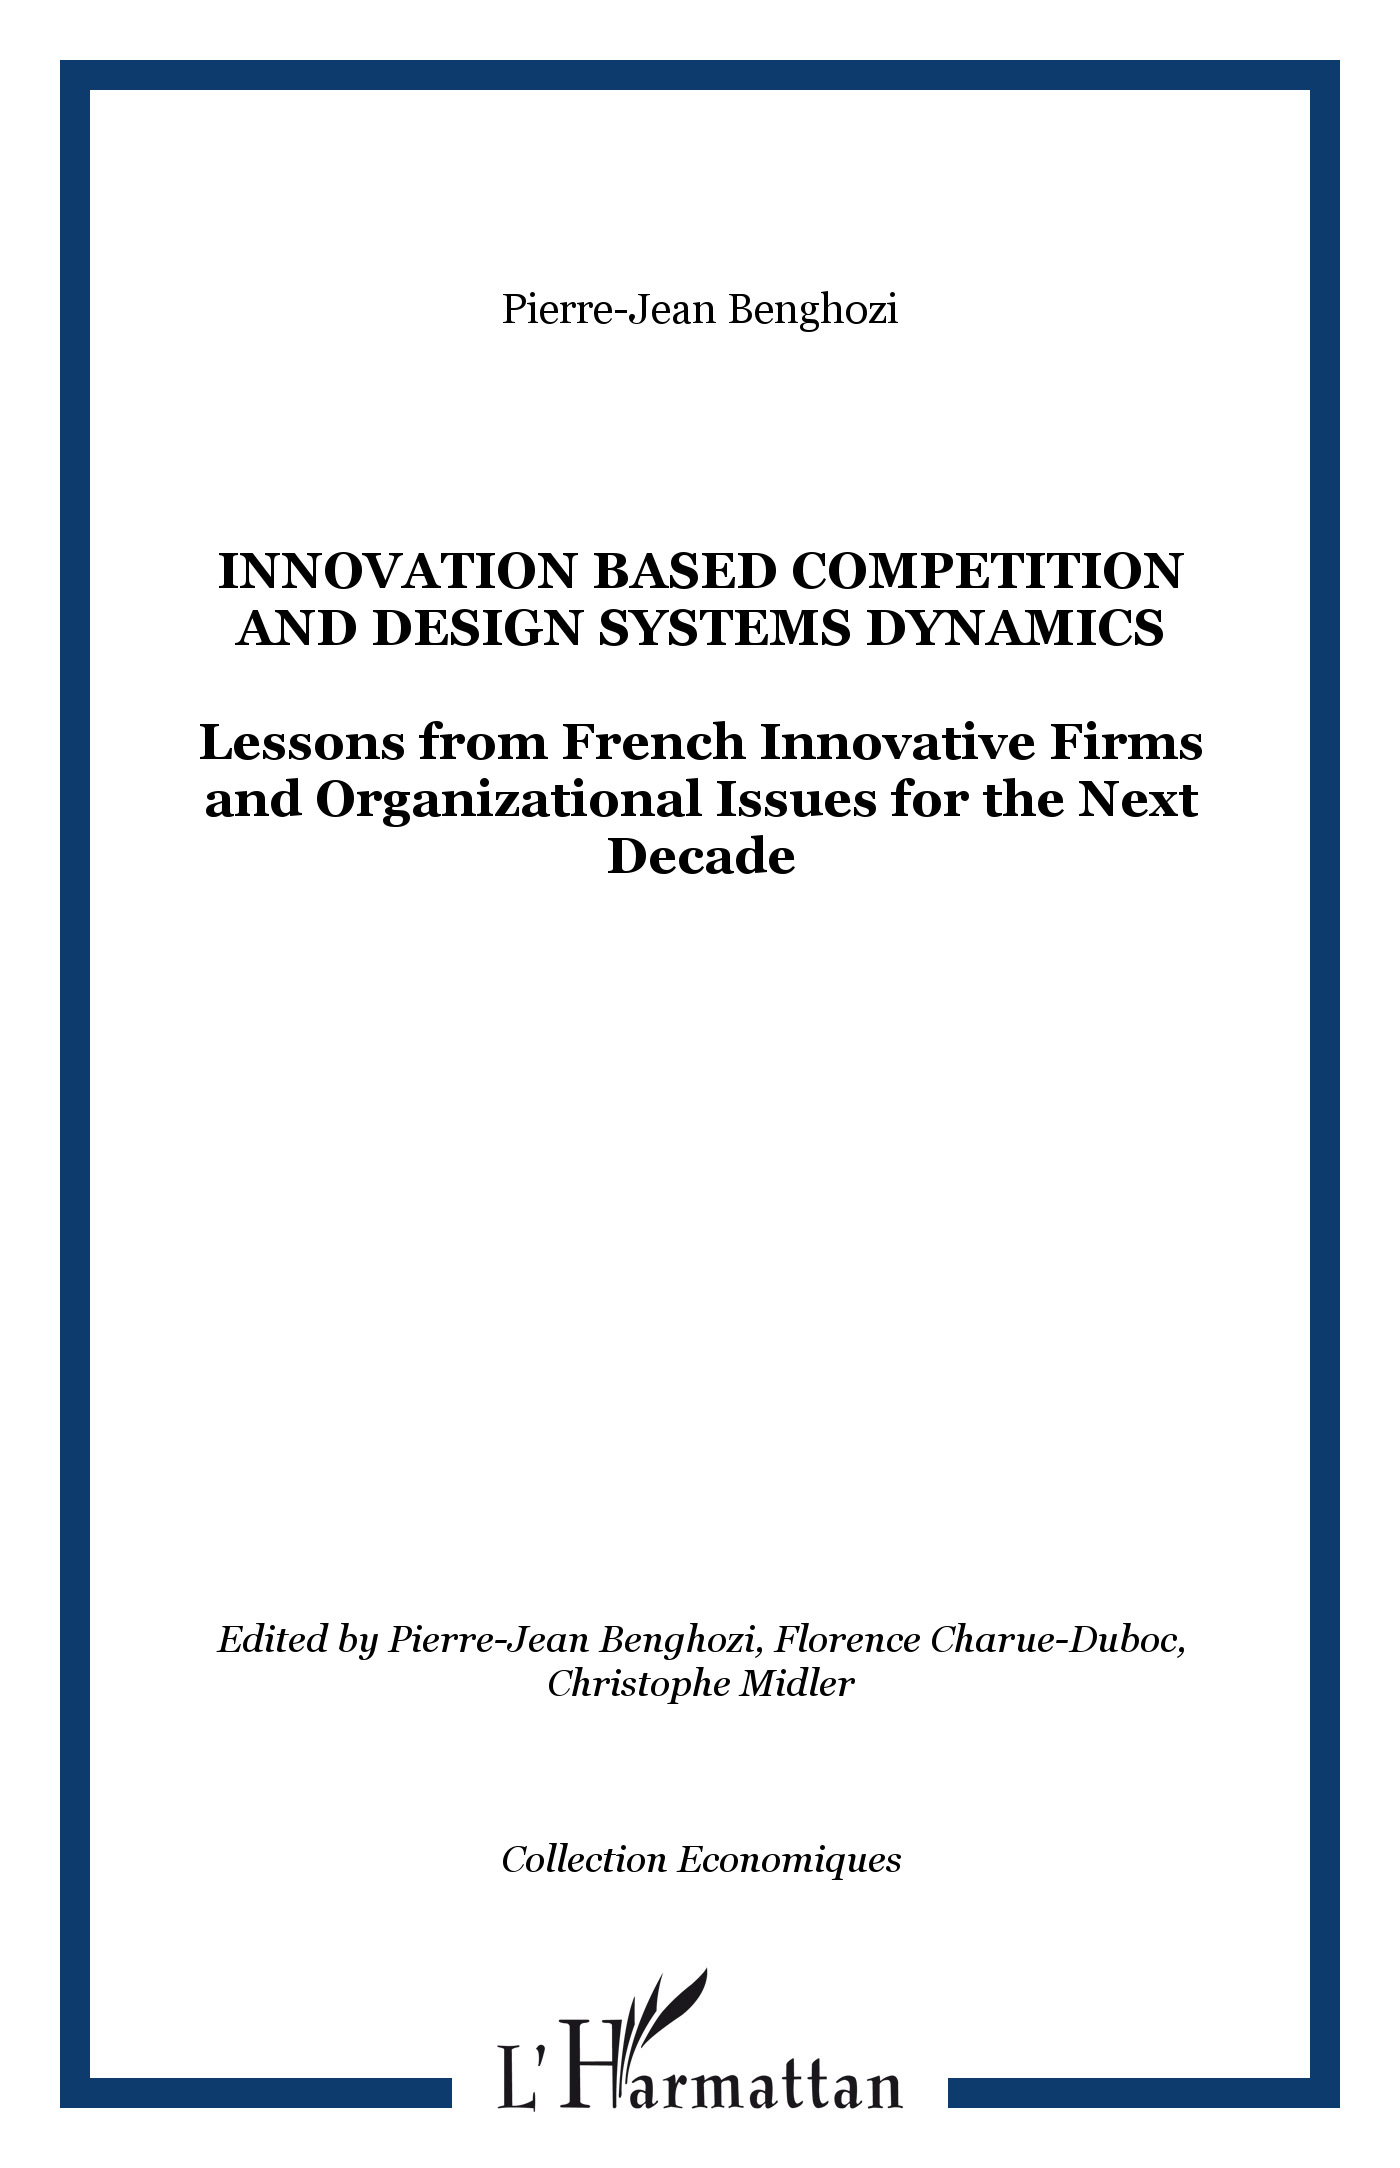 INNOVATION BASED COMPETITION AND DESIGN SYSTEMS DYNAMICS